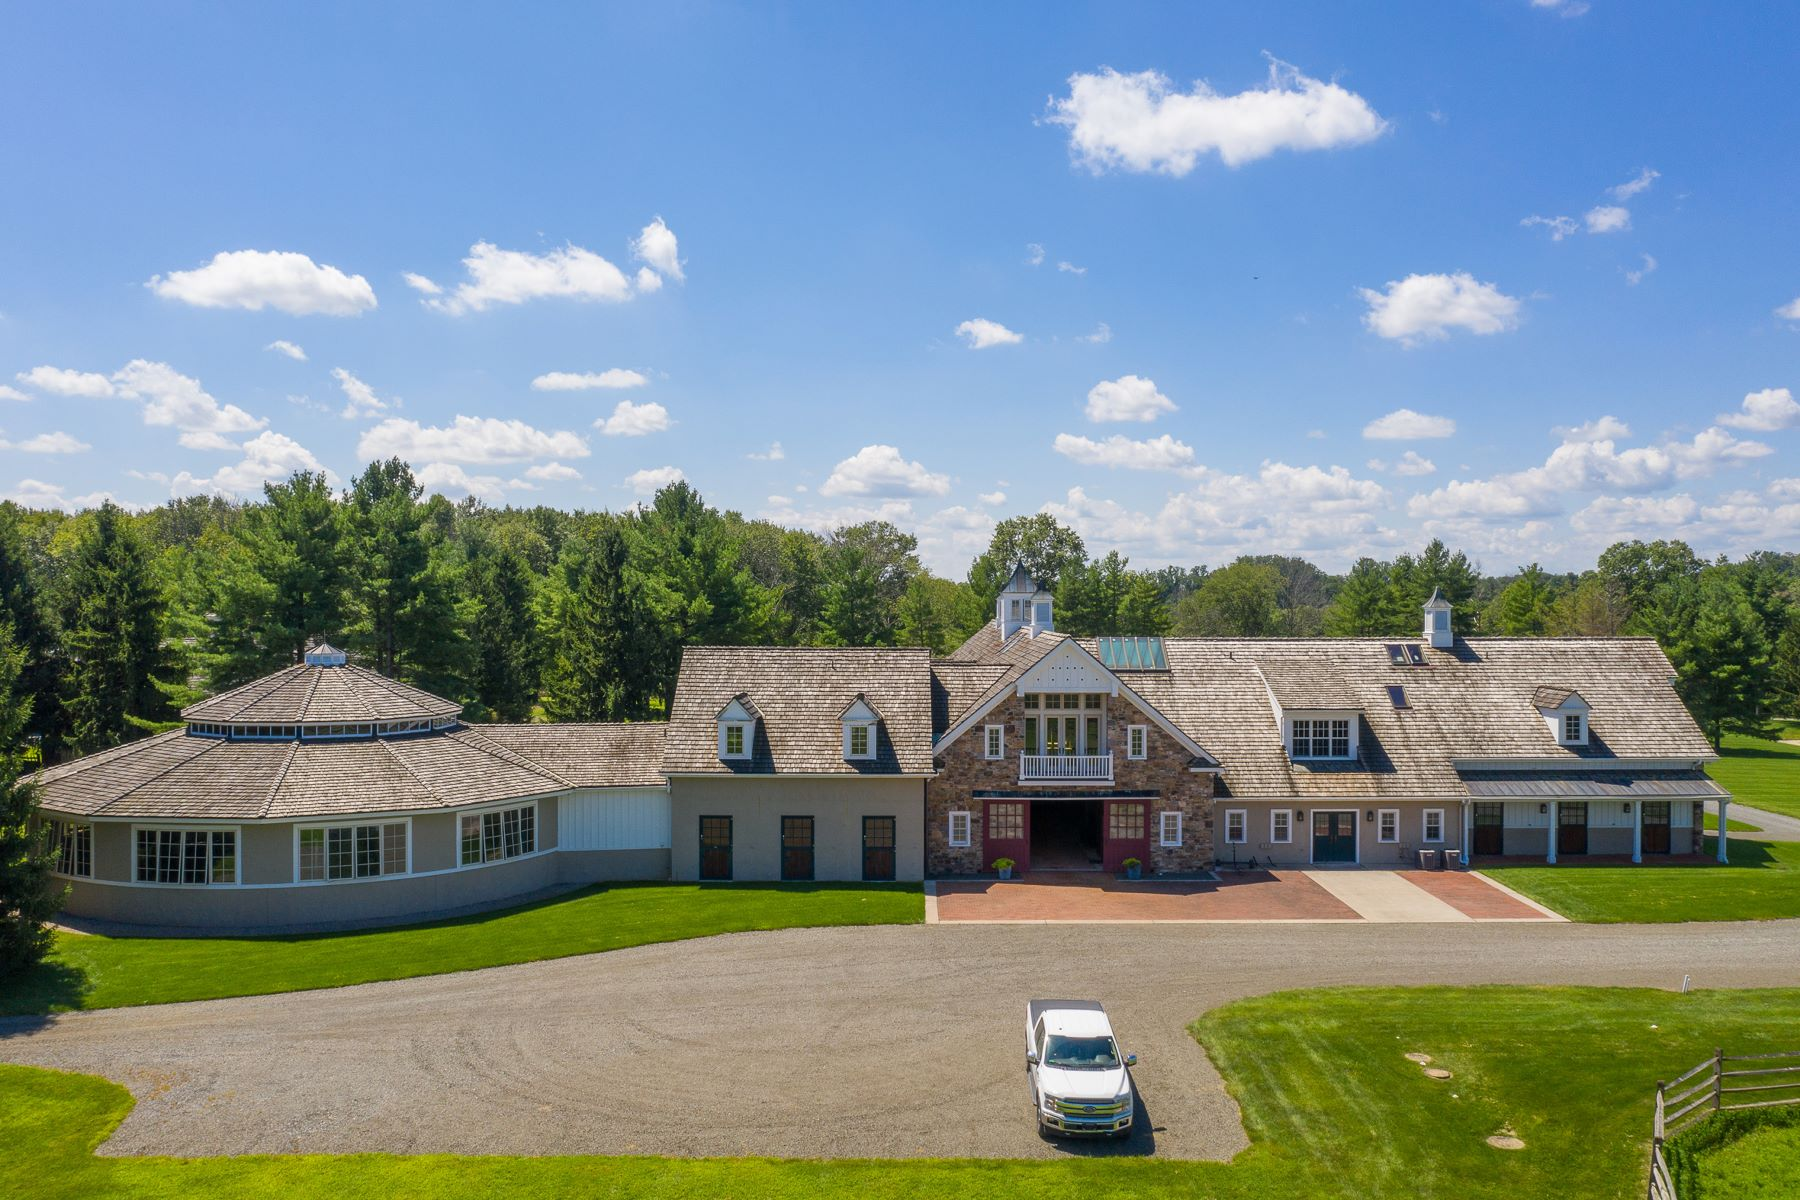 Additional photo for property listing at Holly Farm 86 SANDY RIDGE RD, Stockton, New Jersey 08559 United States